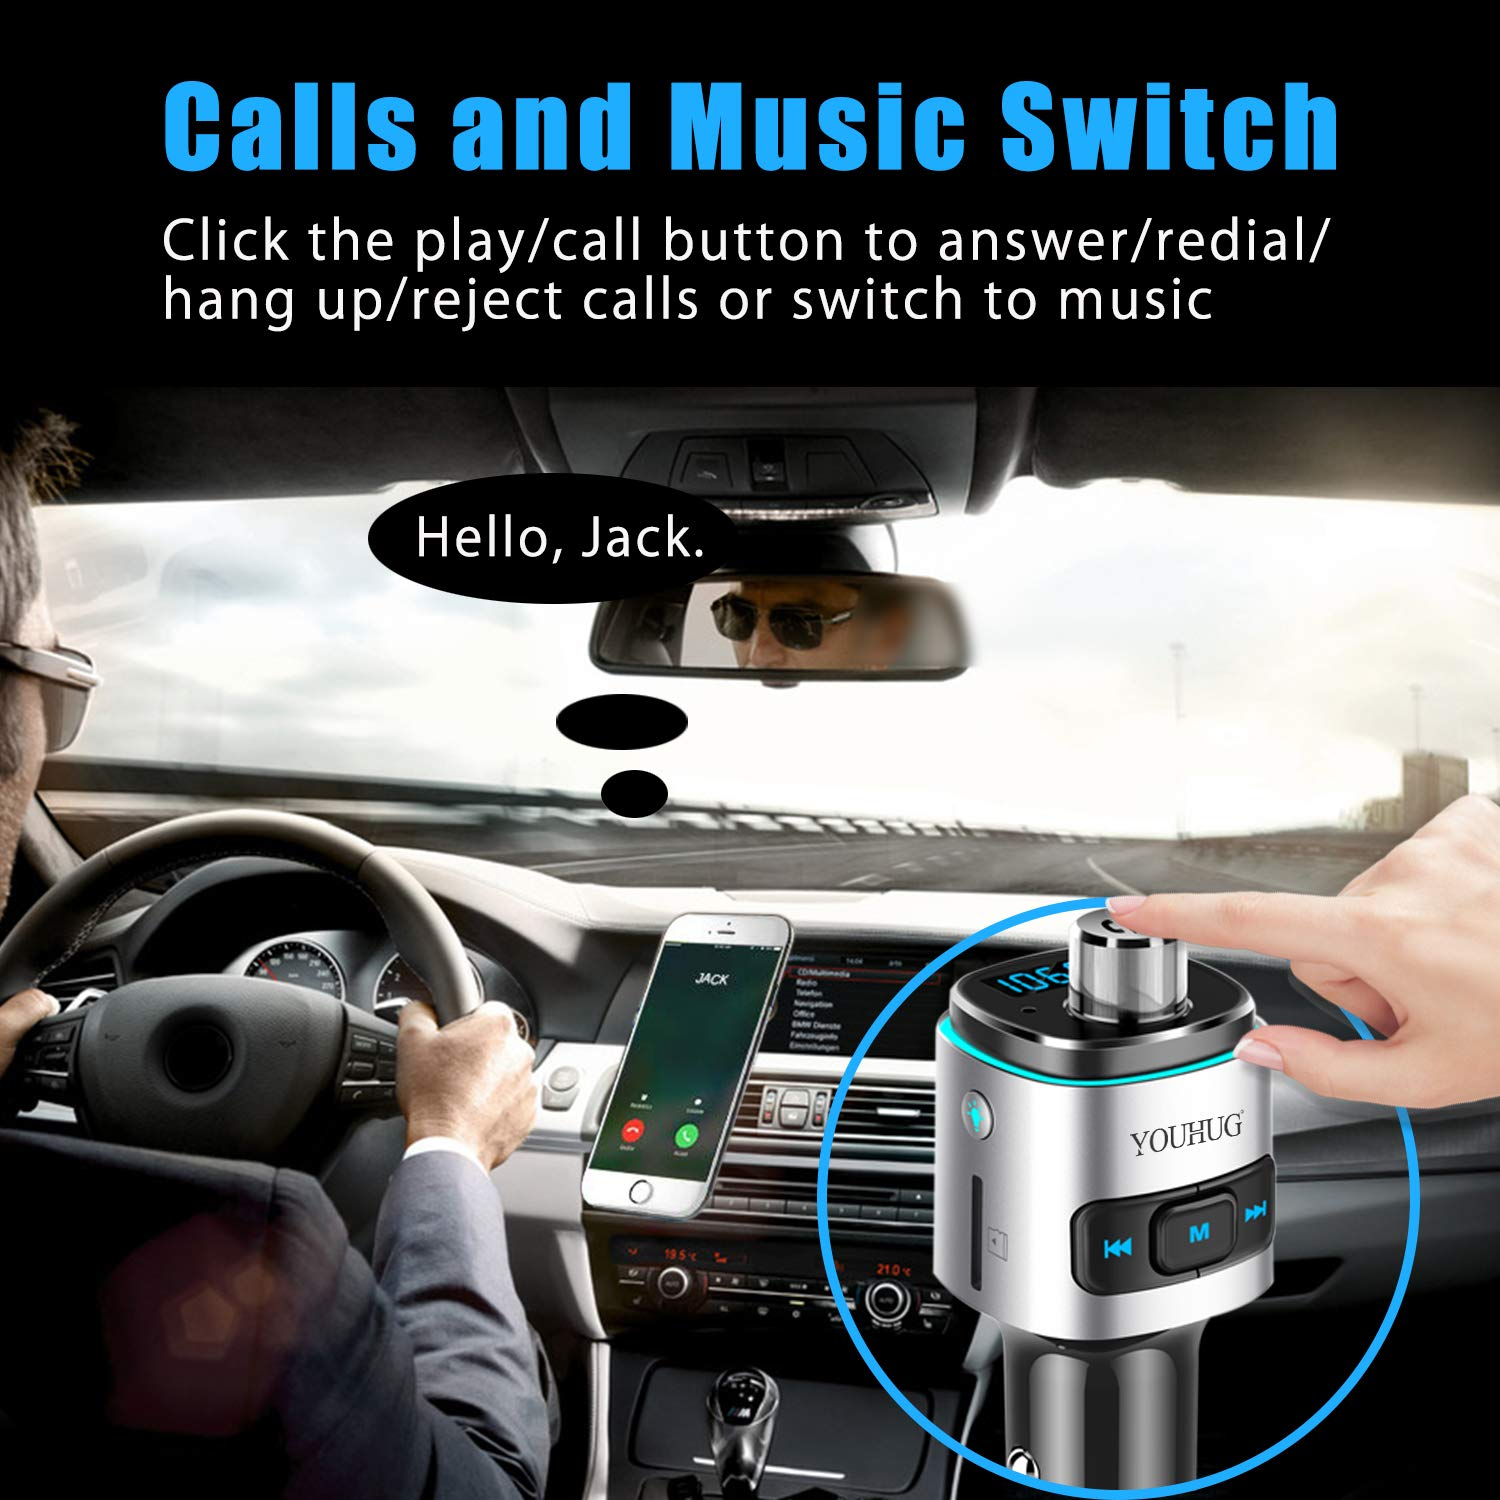 YOUHUG Bluetooth FM Transmitter Car Charger Wireless 7 Color LED Quick Charging 3.0 Hands Free Calling Dual USB Port (Sliver)